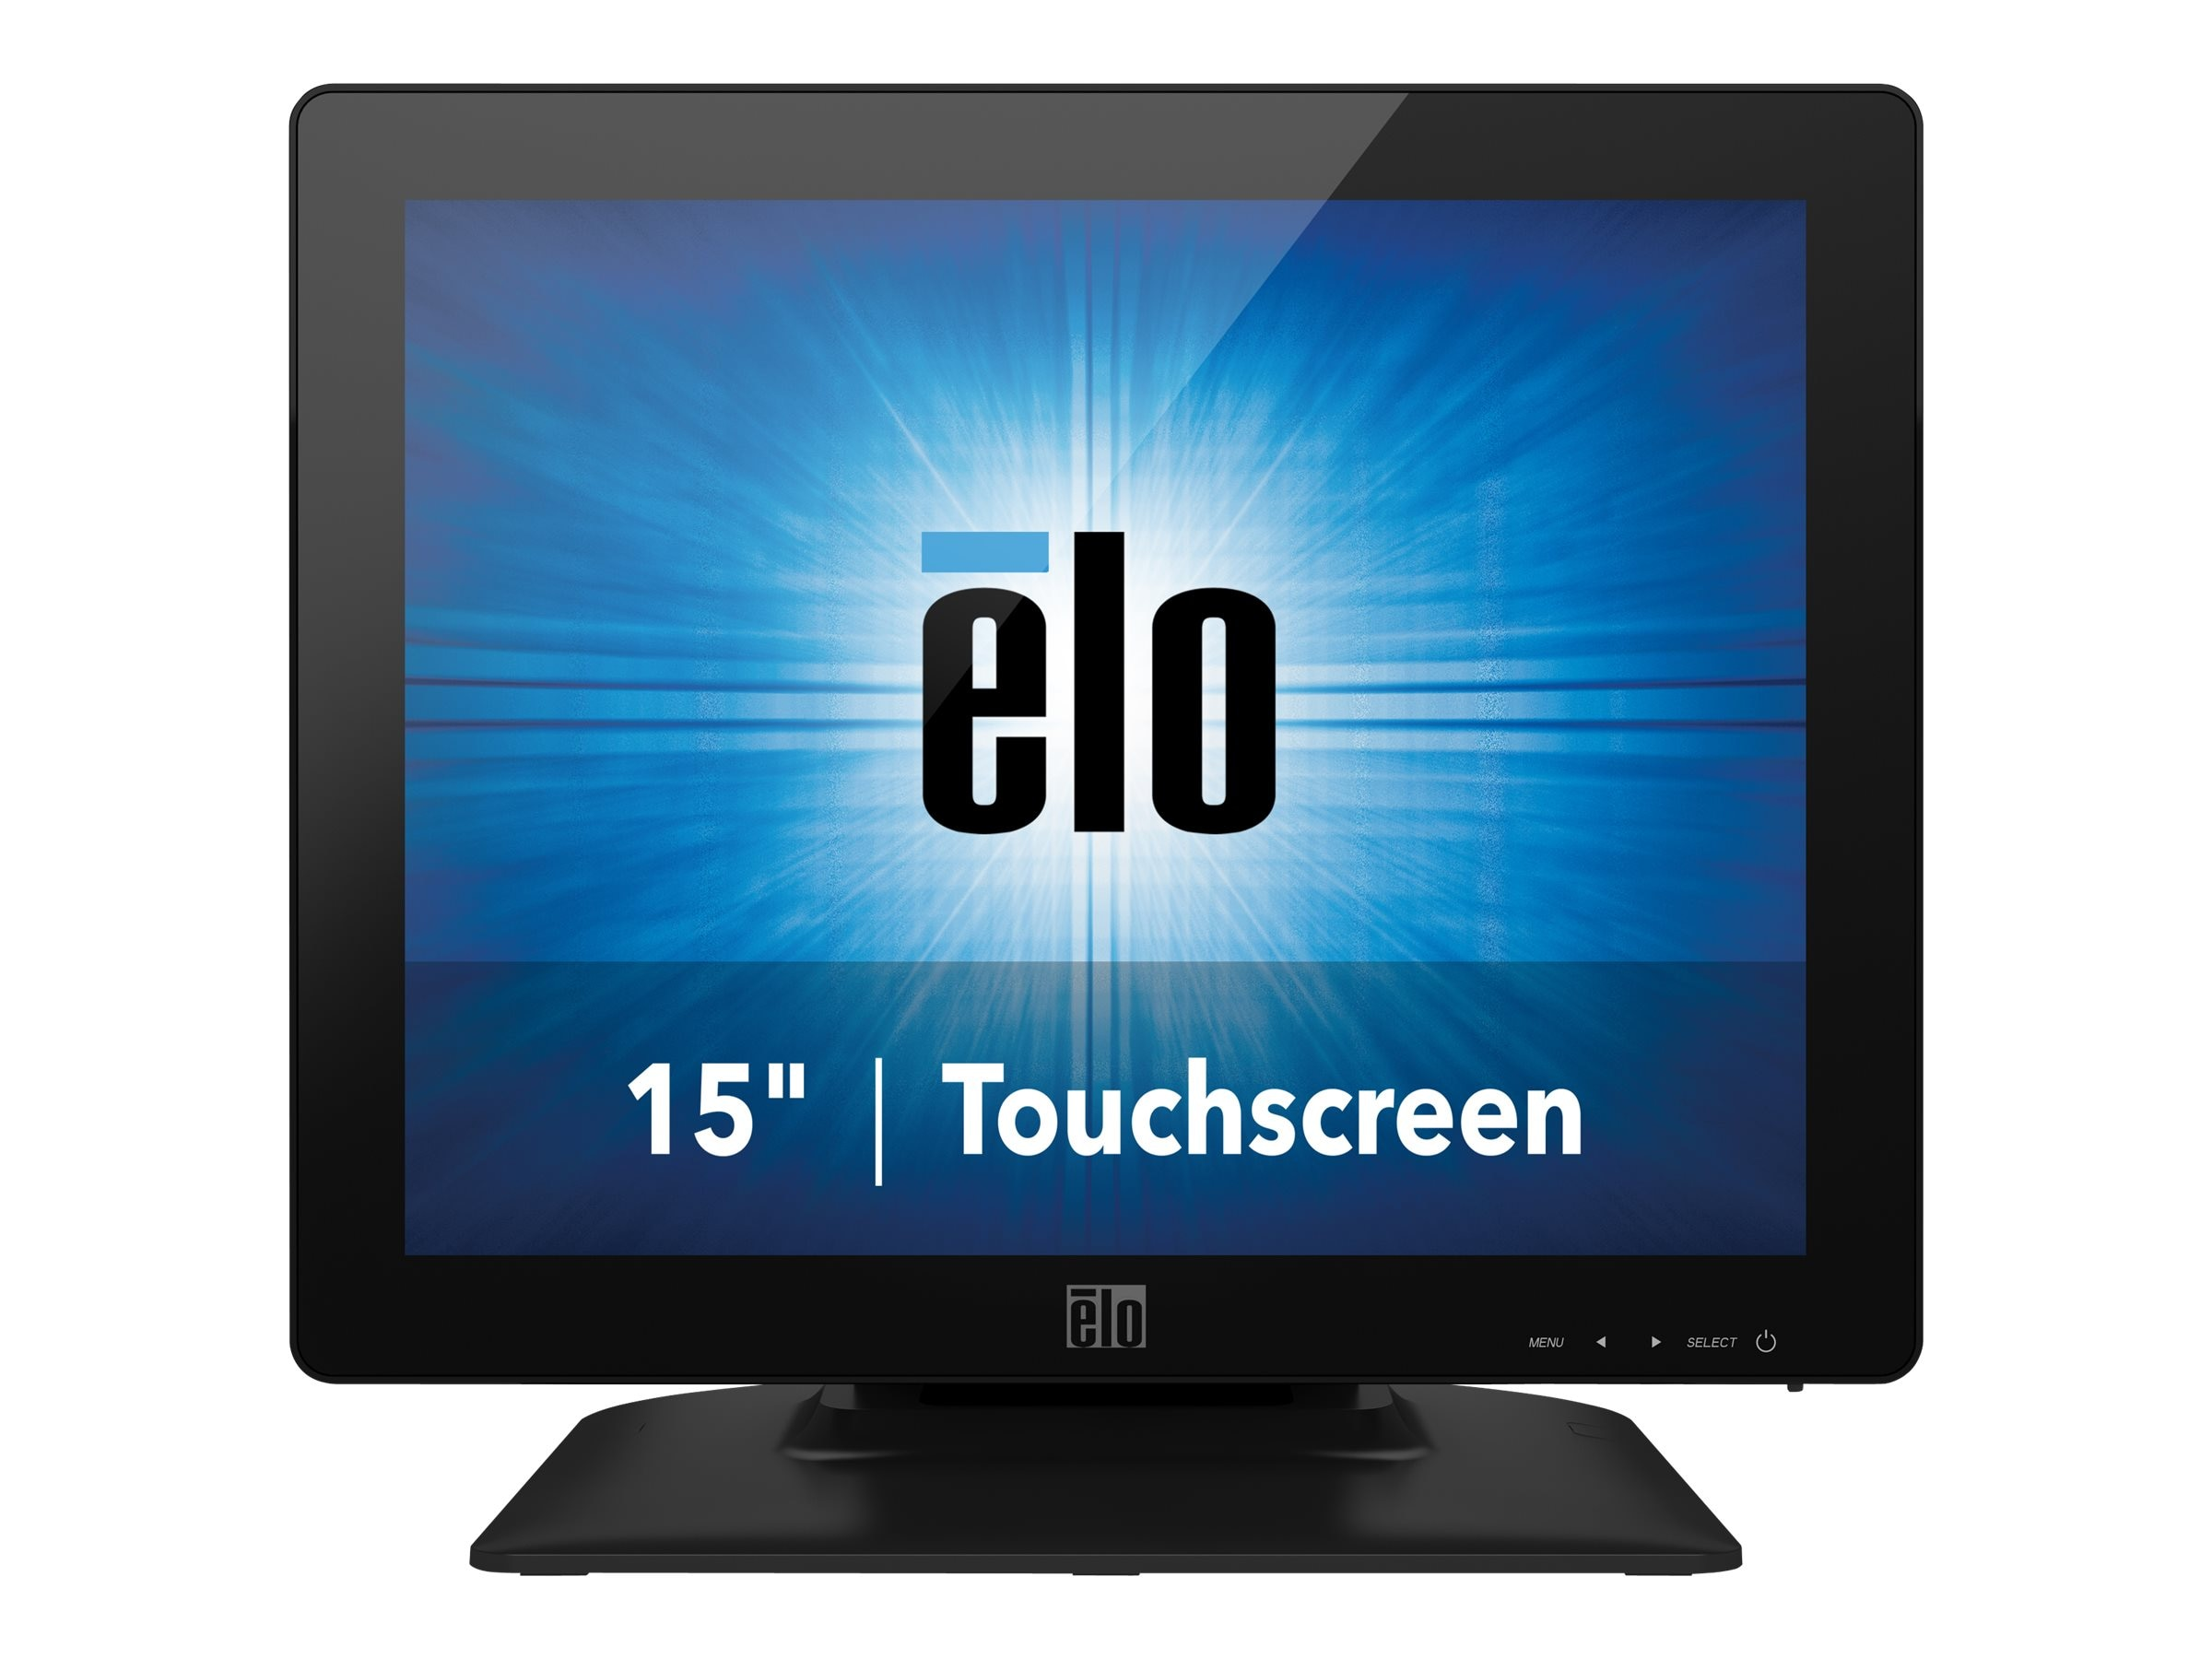 ELO Touch Solutions 15 1523L LED-LCD IntelliTouch Pro PCAP Monitor, Black